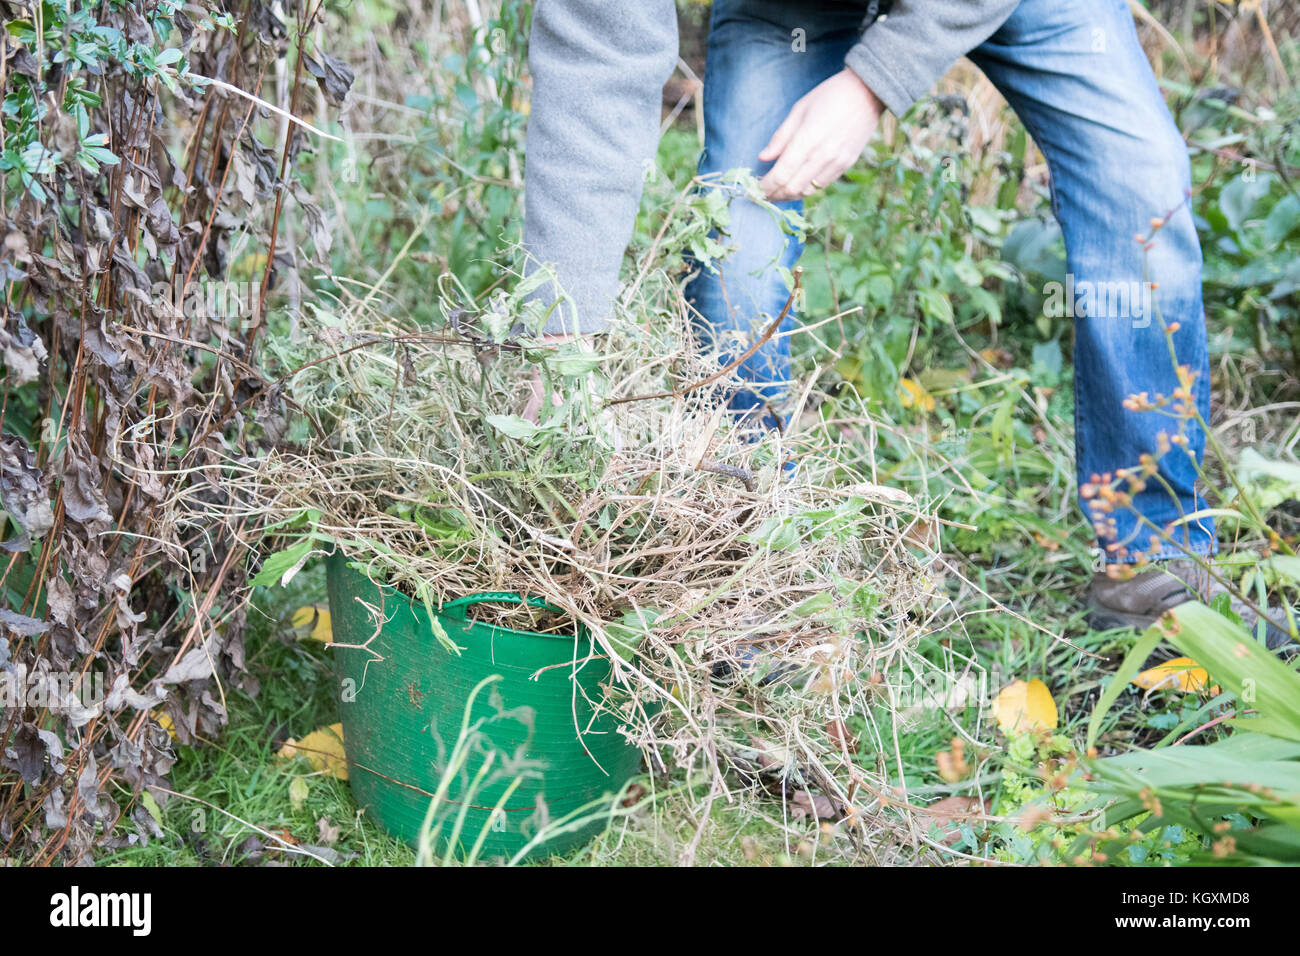 Cutting down old dead sweet pea plants in the garden in autumn - Stock Image